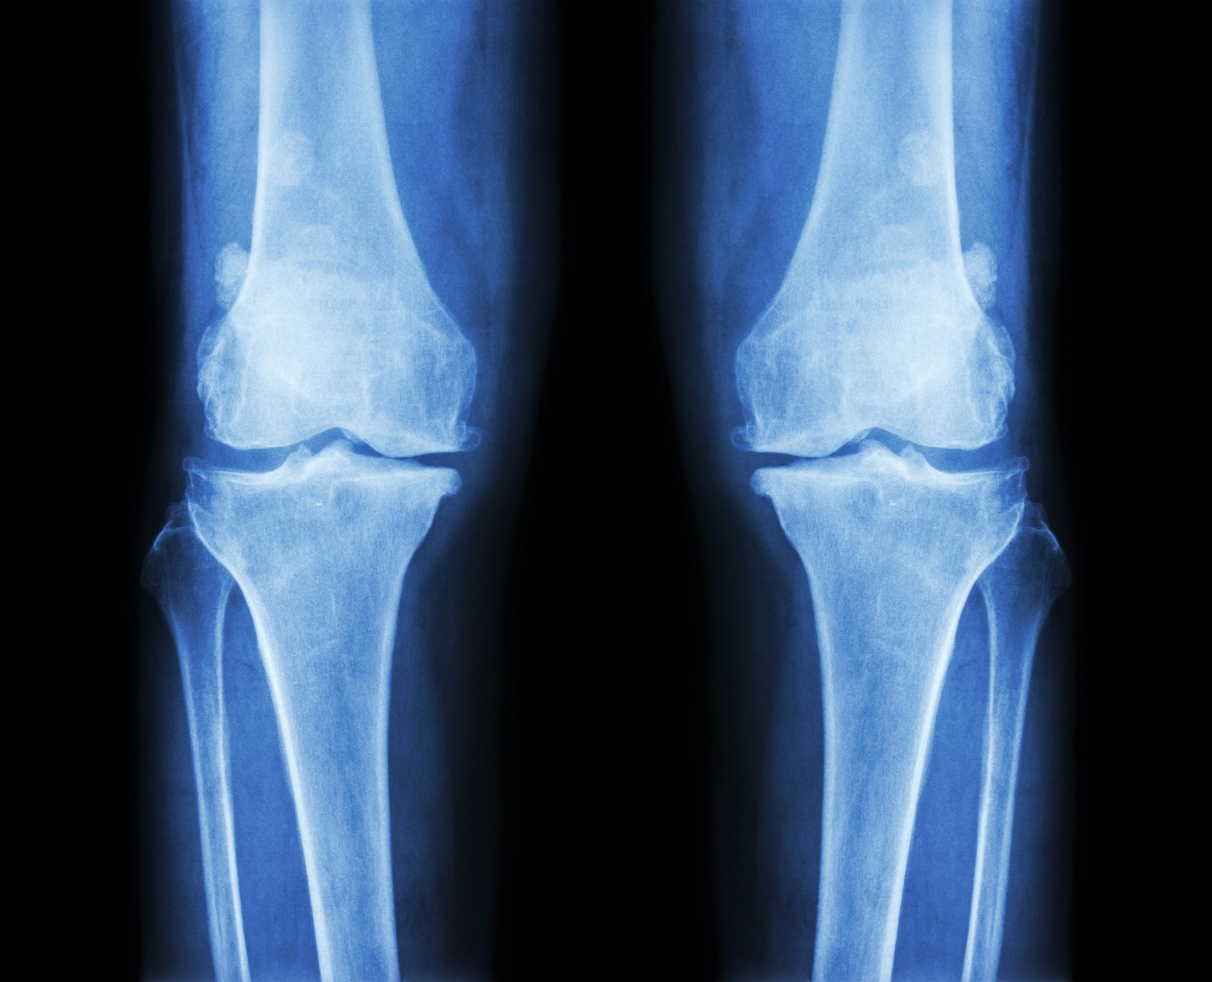 Bone Problems Appear to HIV-Positive People At an Earlier Age